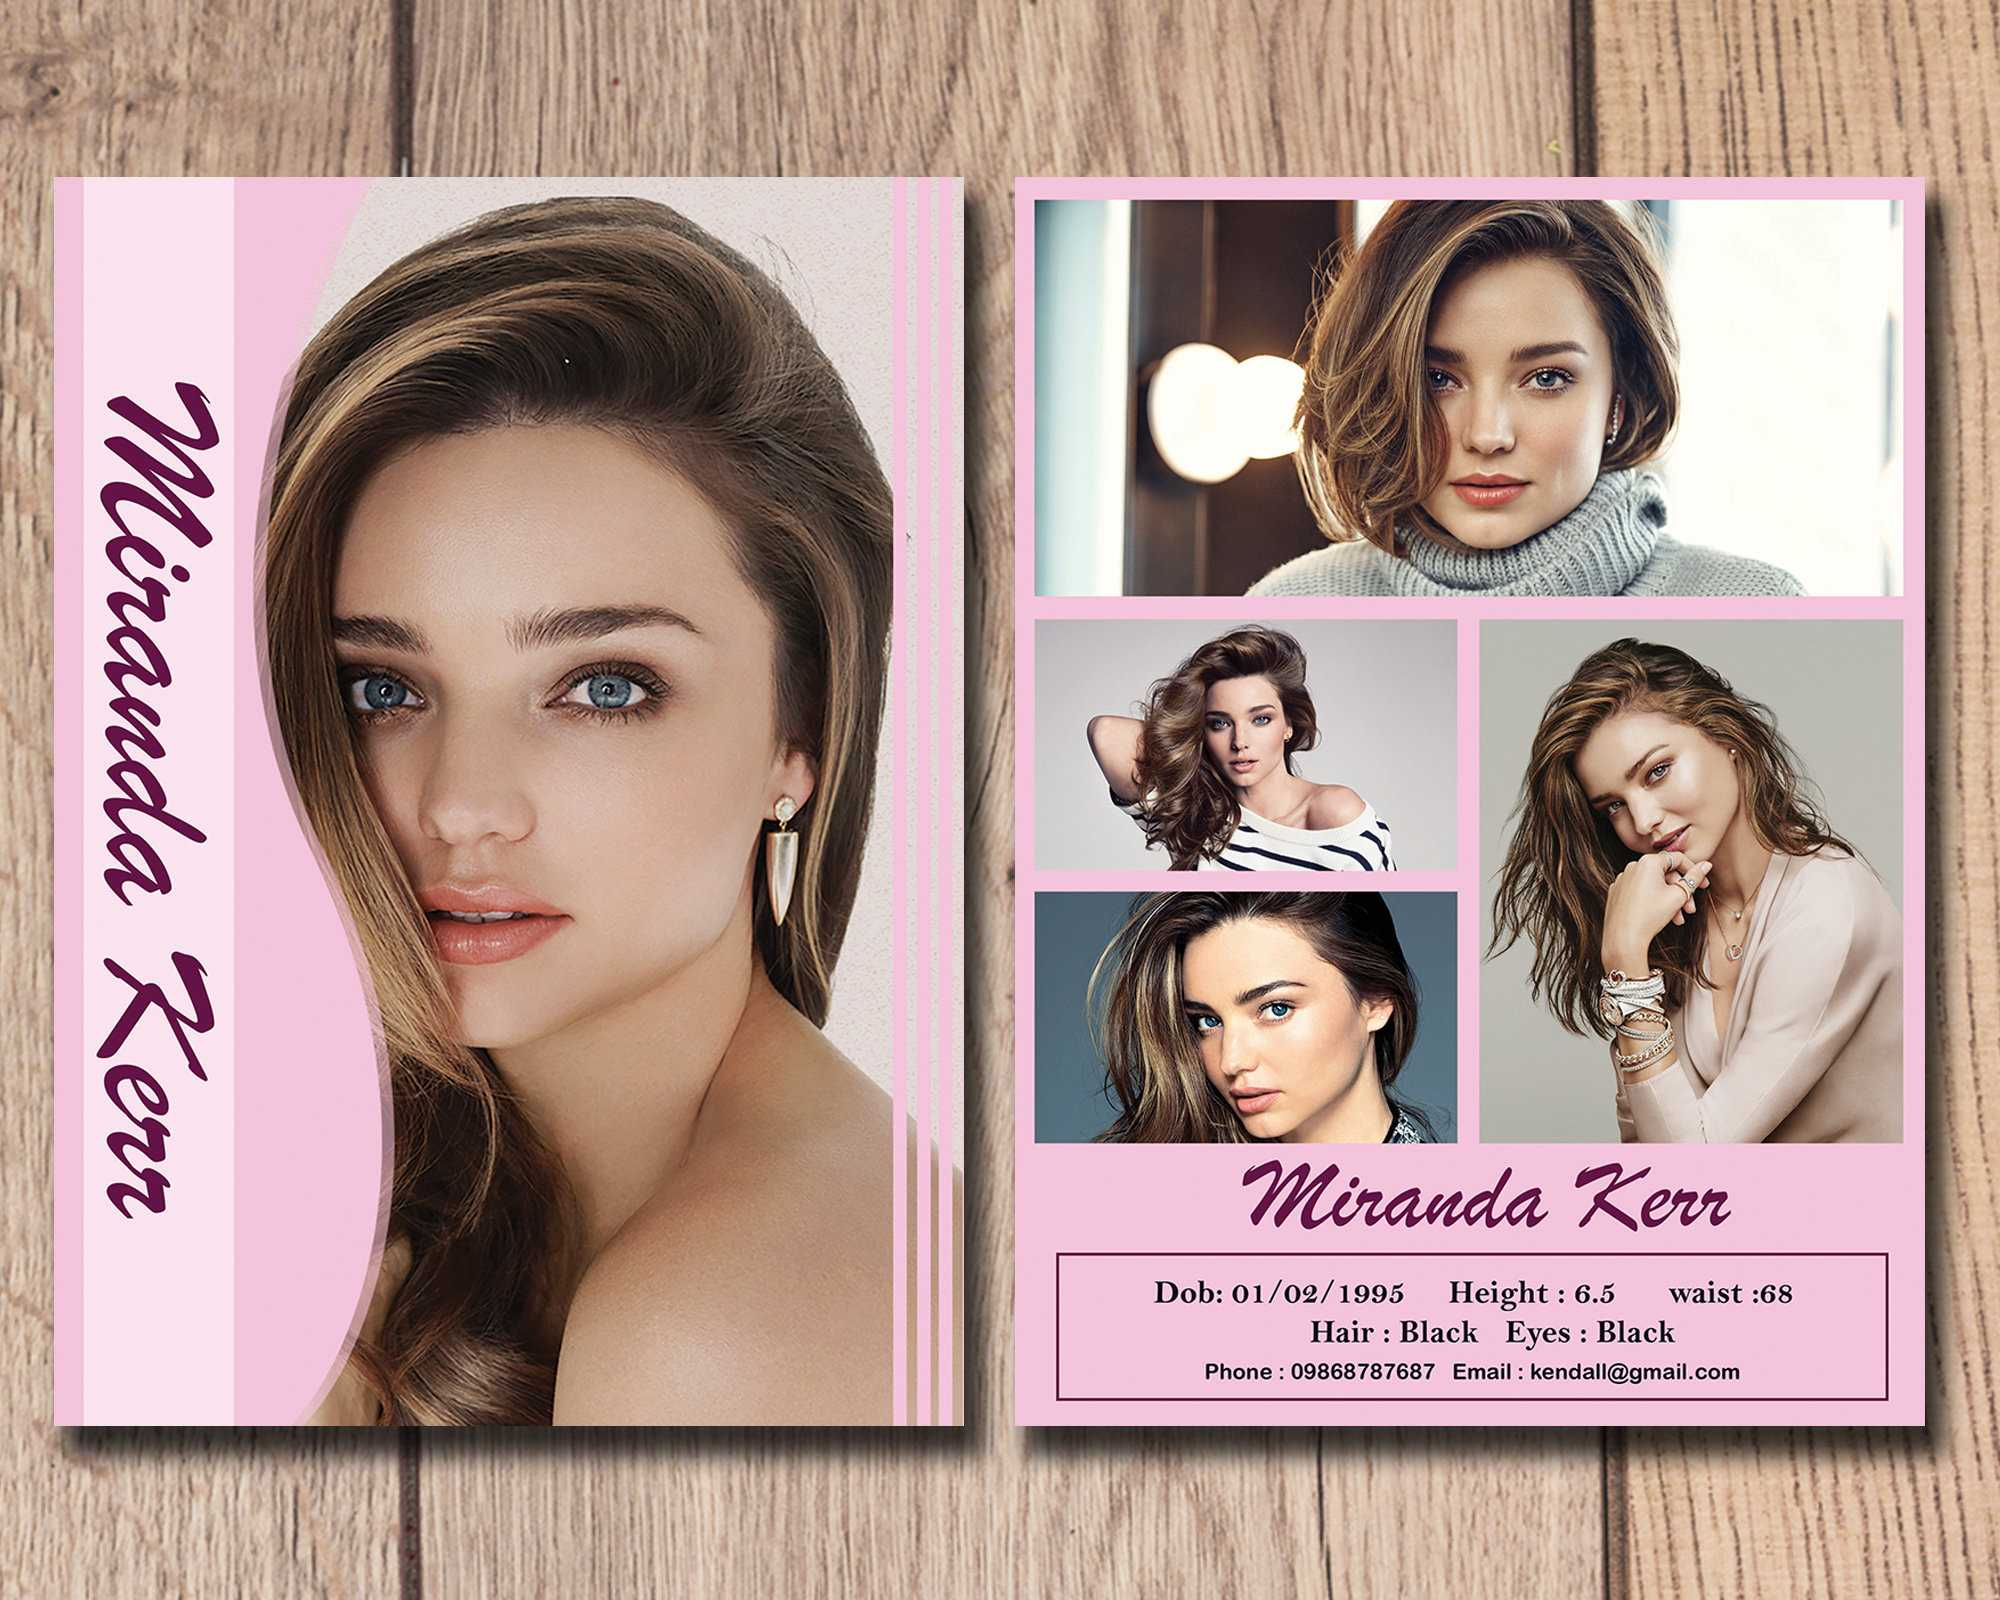 001 Template Ideas Model Comp Card Outstanding Psd Free Within Free Model Comp Card Template